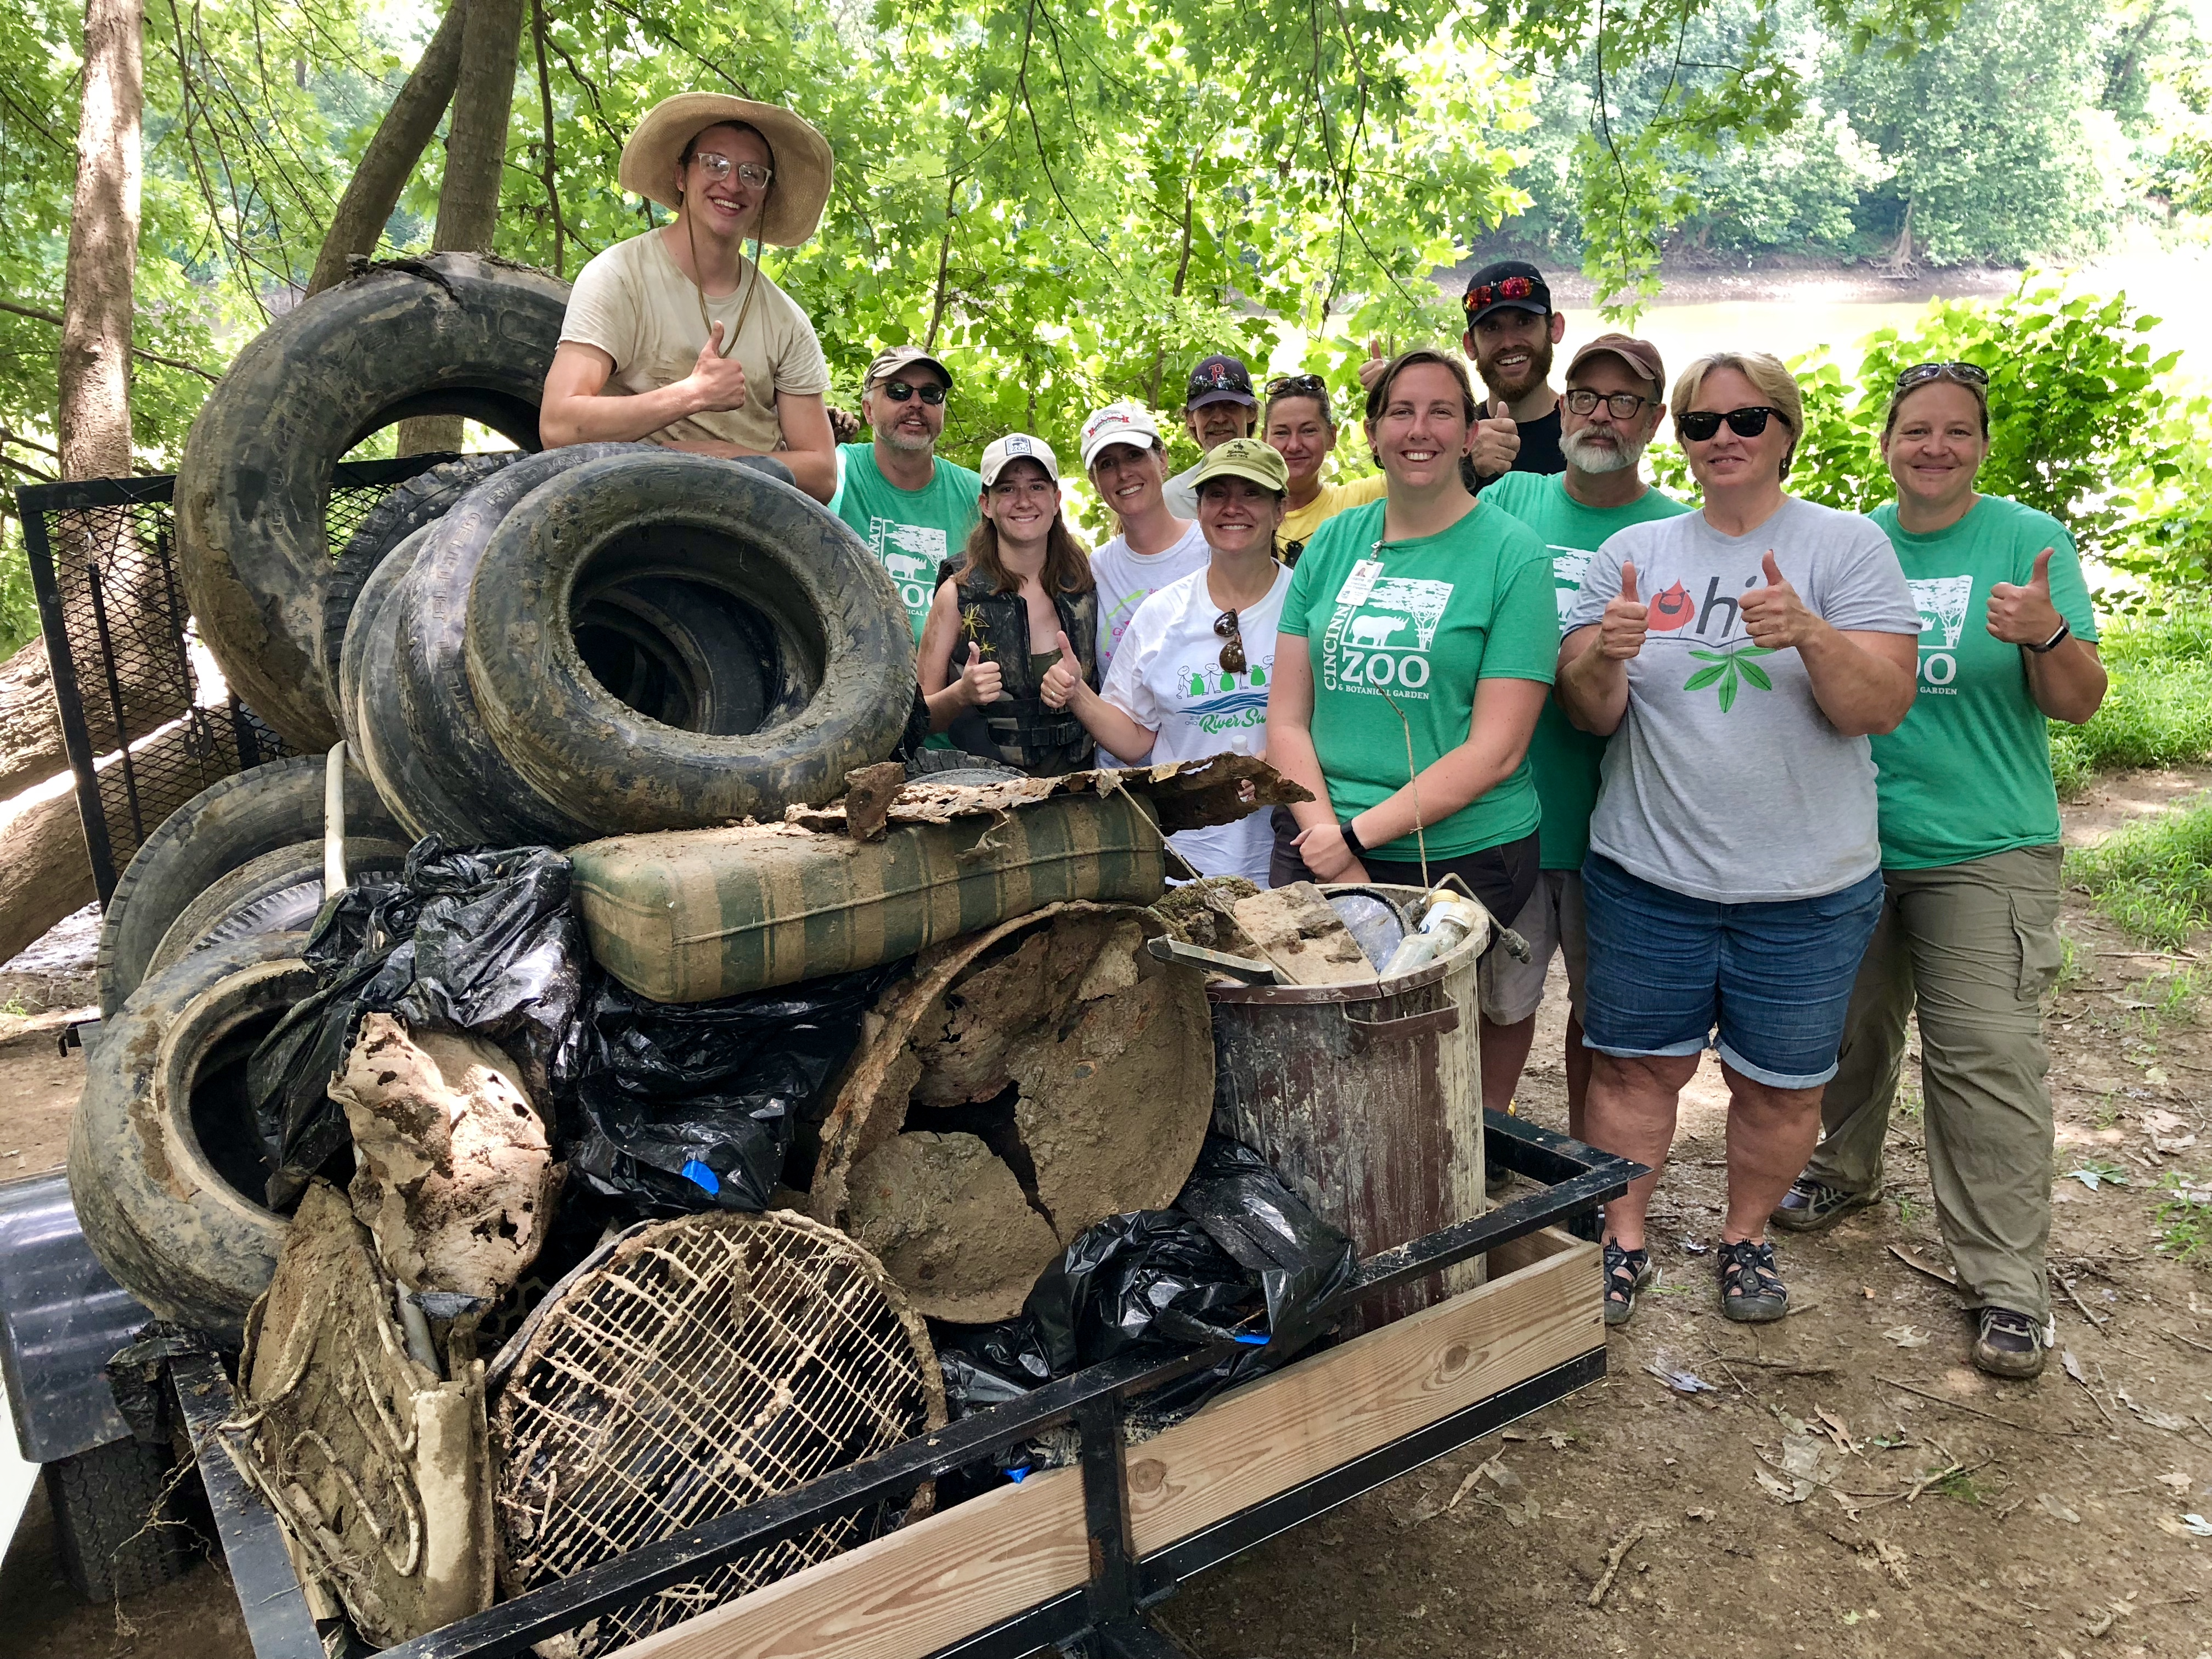 group of volunteers posing with trash they have collected